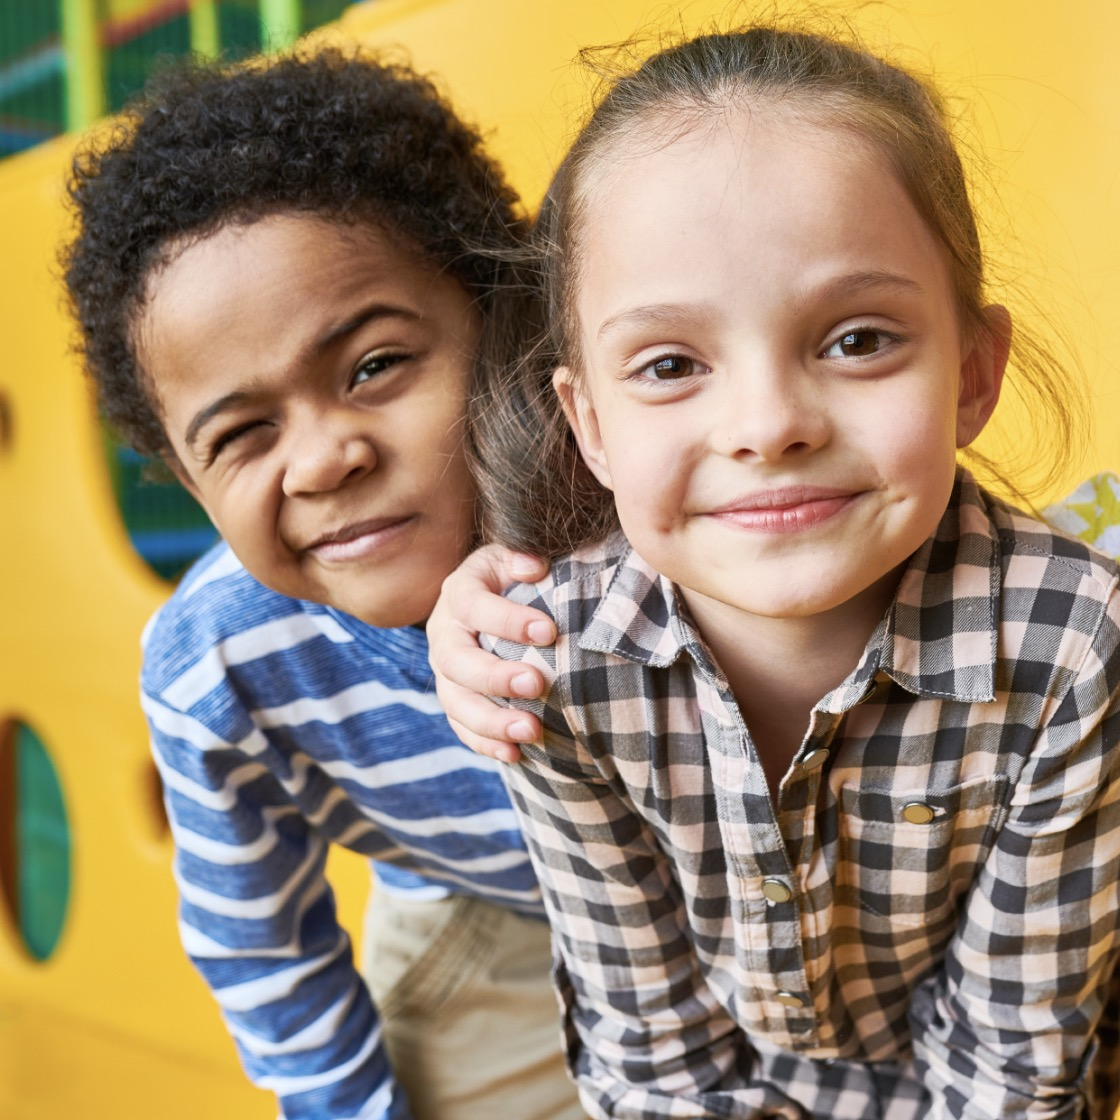 A black boy and white girl stand together in front of a yellow play structure.